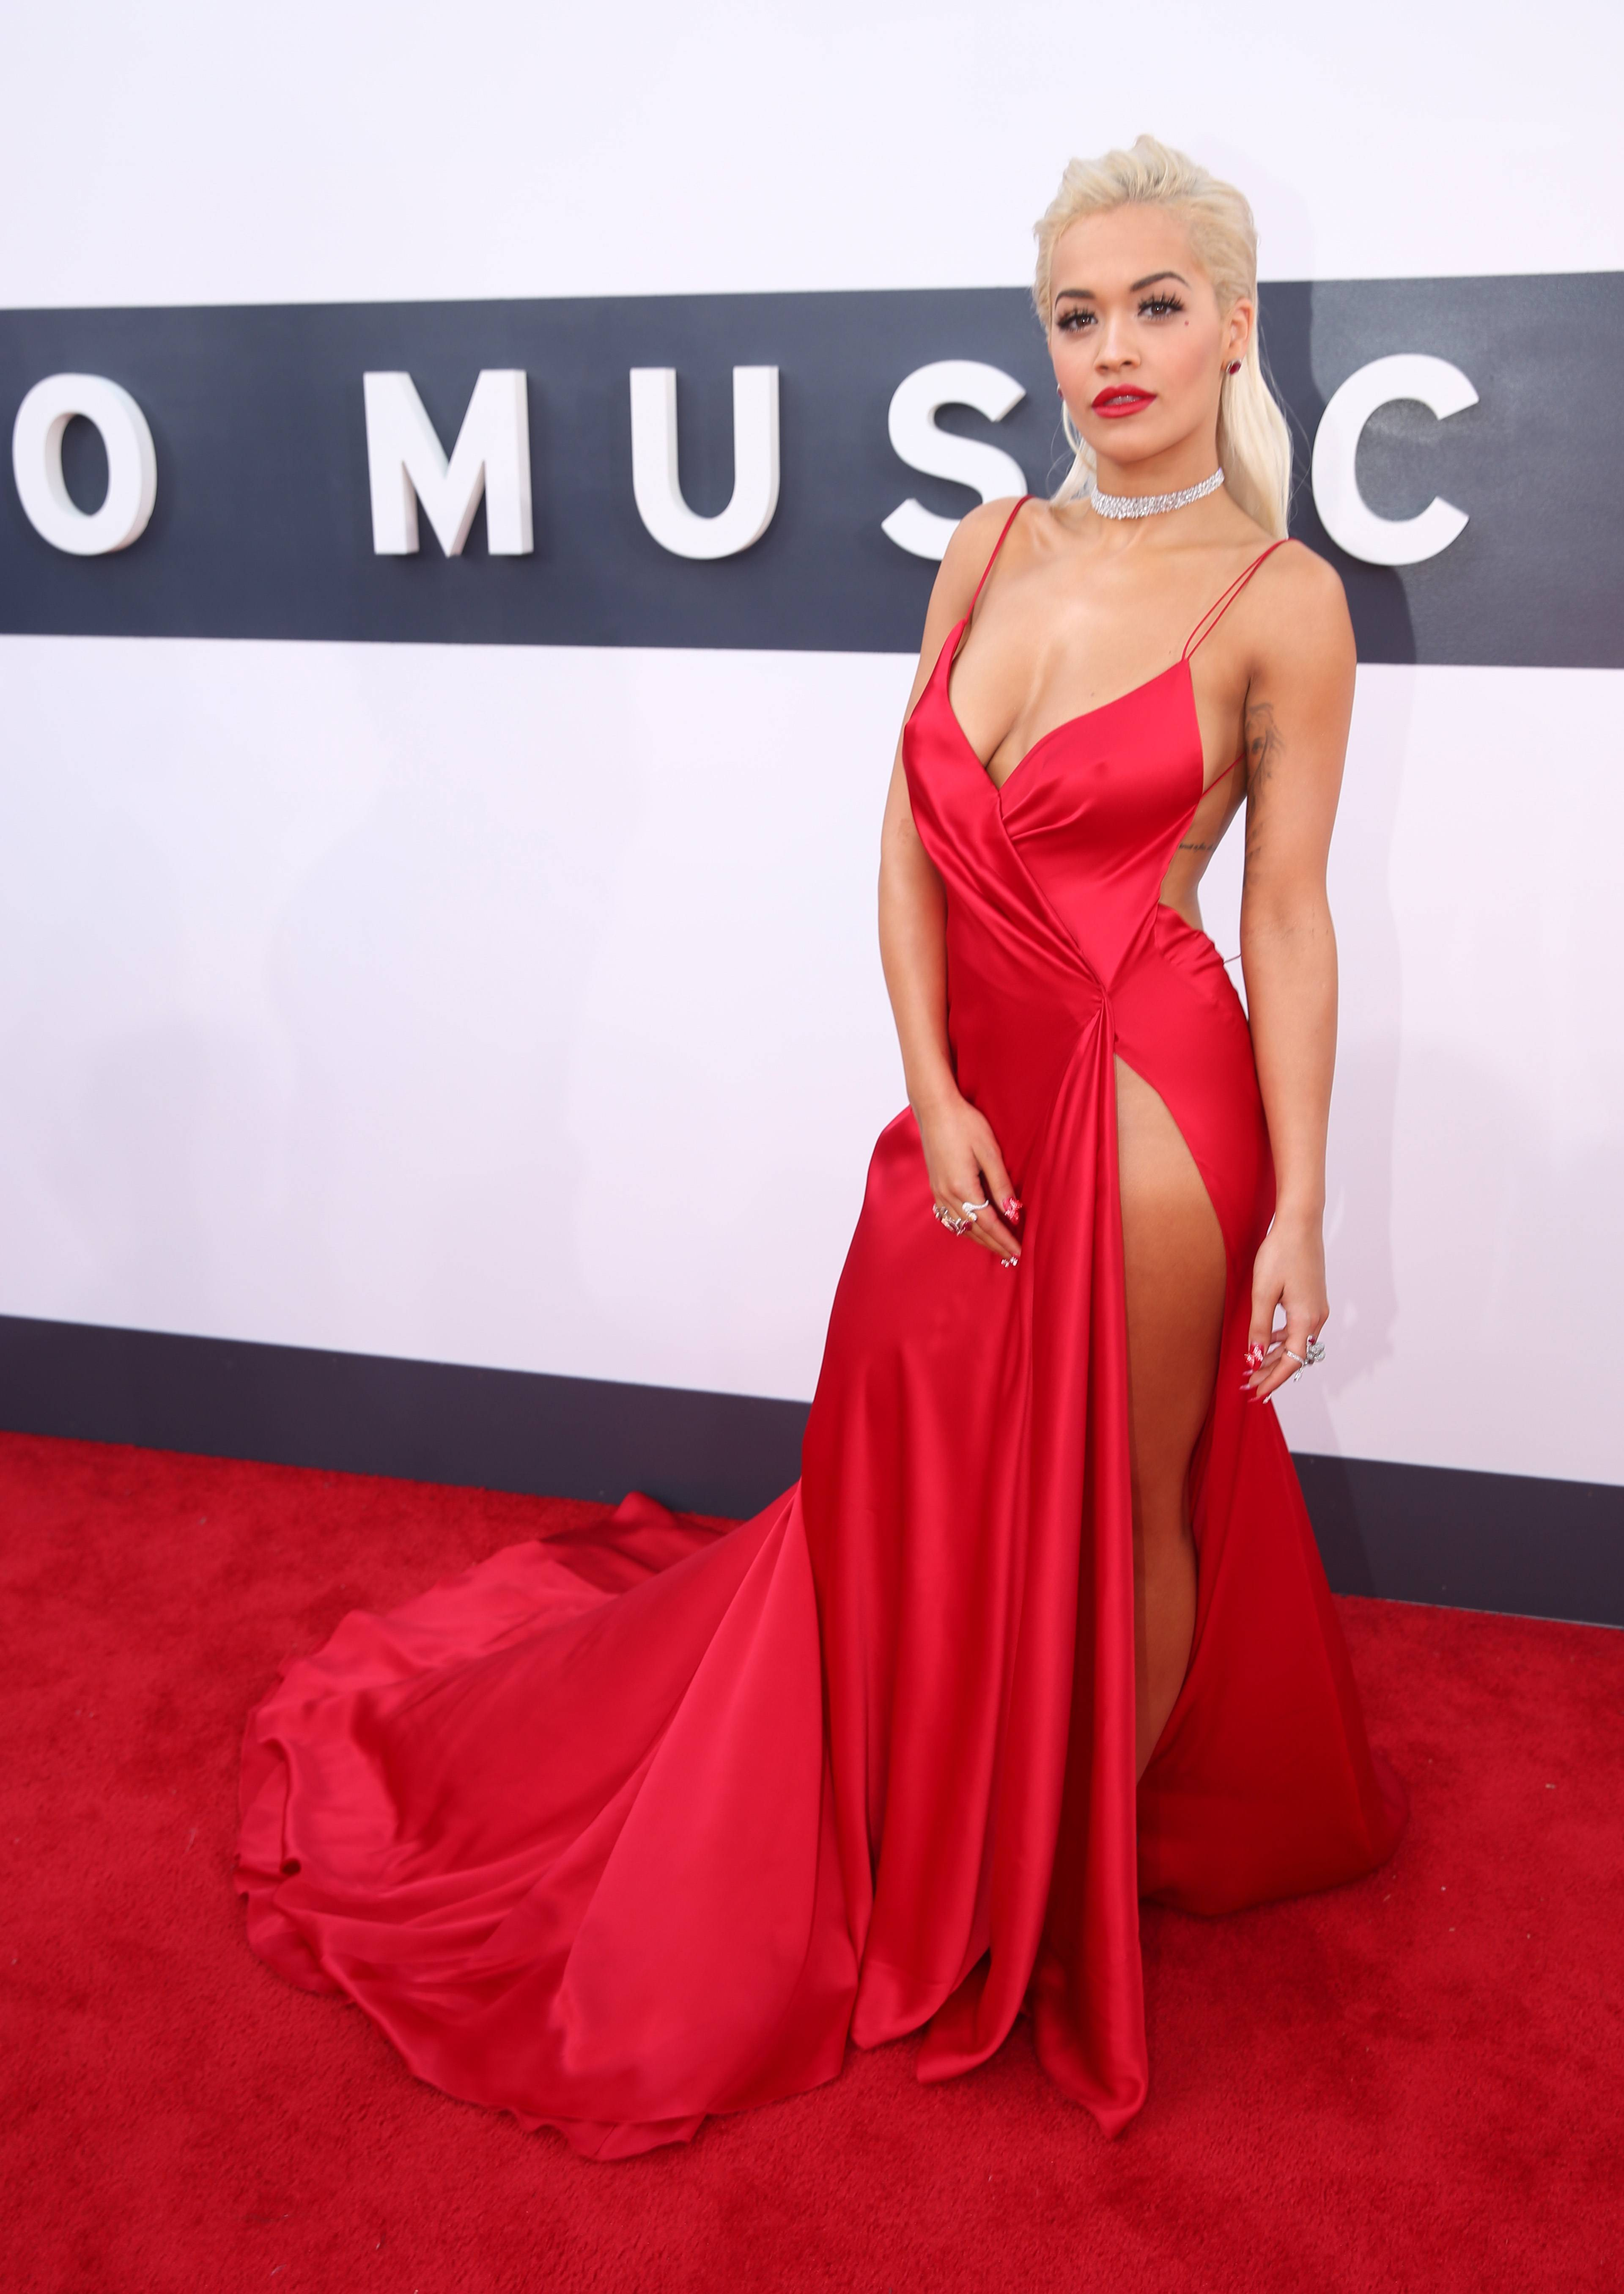 WORST: While this outfit had some potential, that slit up the side on Rita Ora's dress takes it from sexy to tacky.